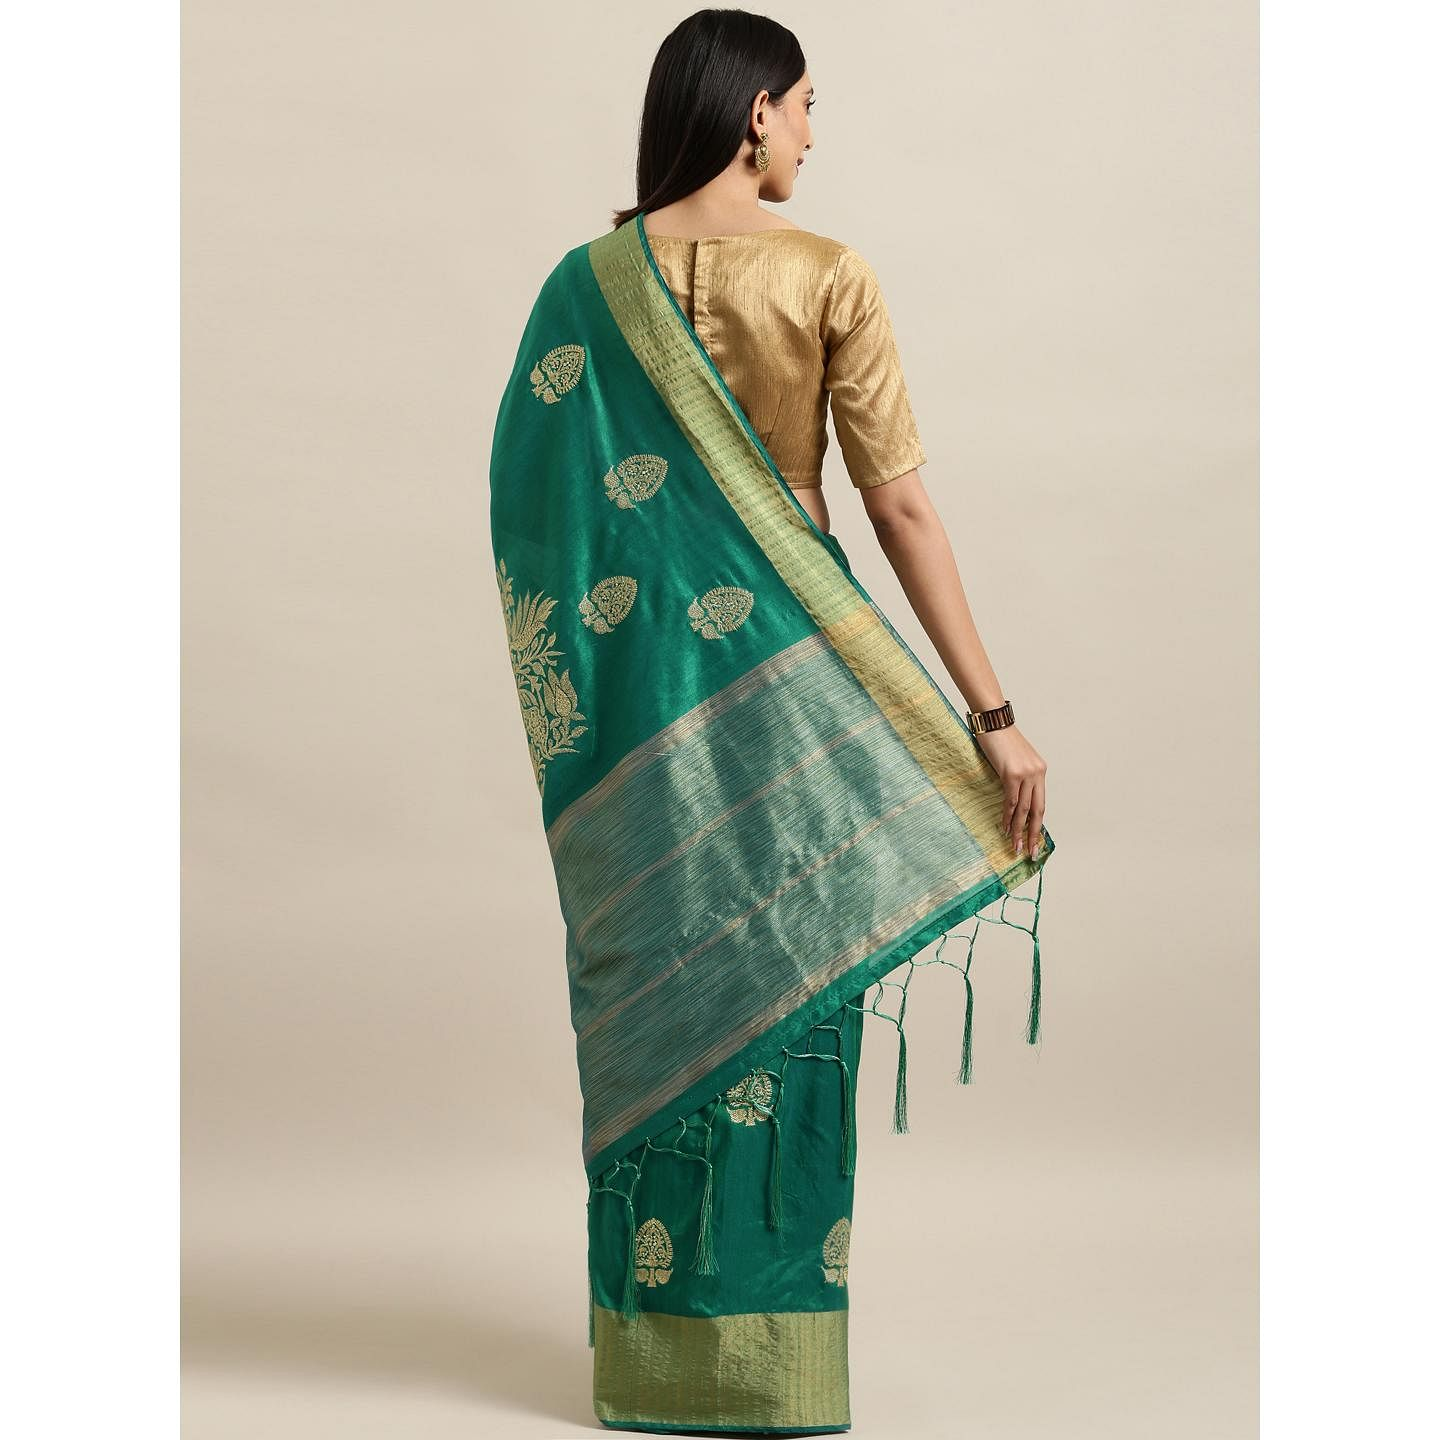 Pache - Green Colored Partywear Embroidered Cotton Art Silk Saree With Tassels